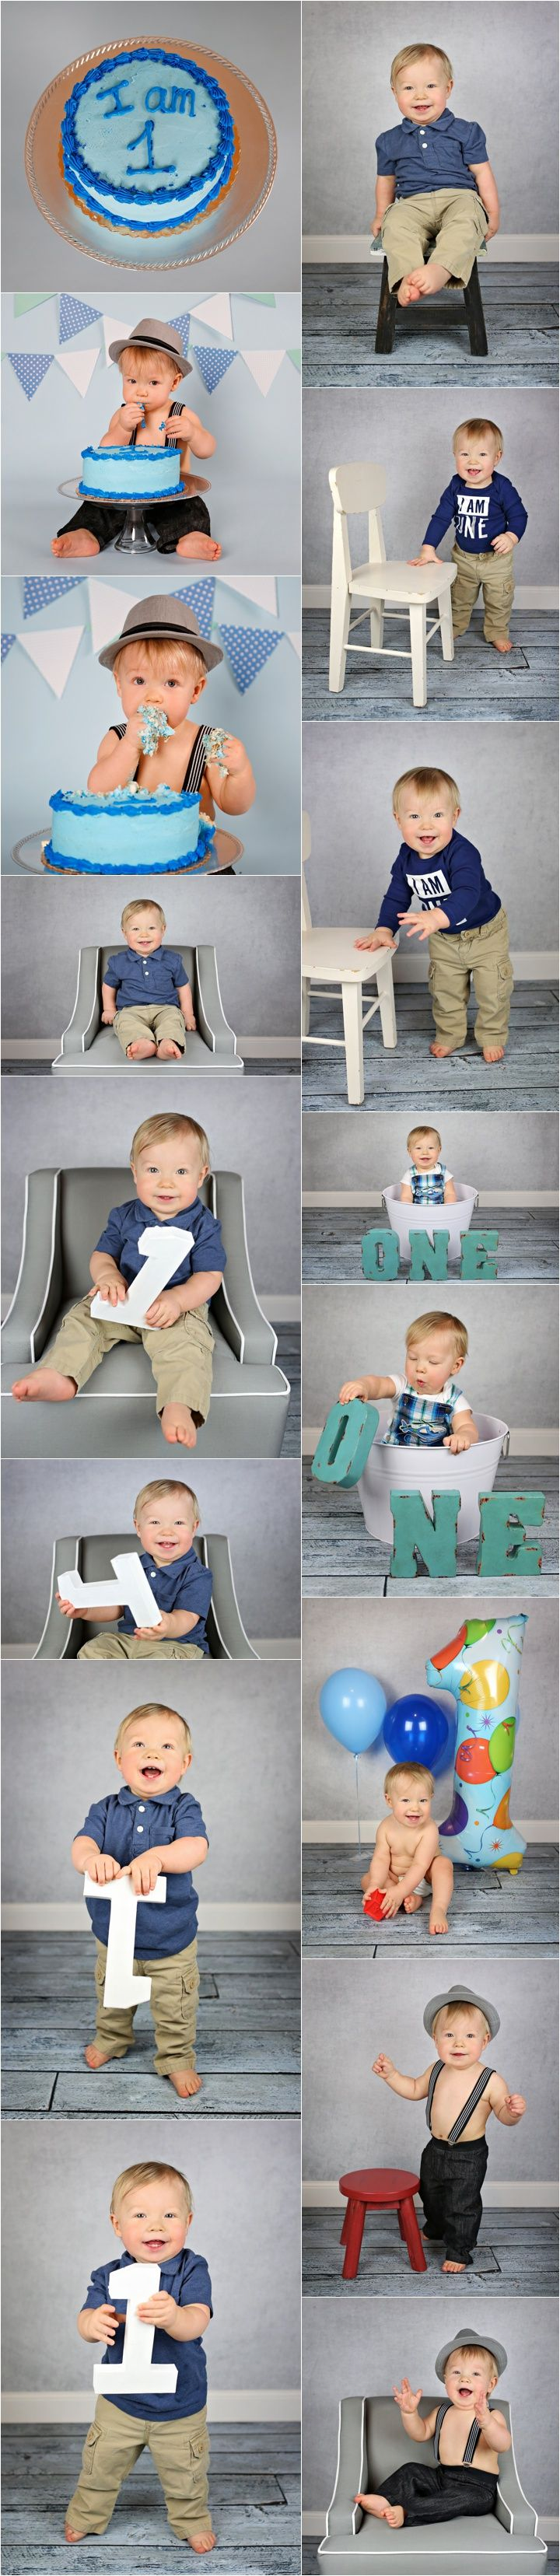 1 Year Old Boy Photo Shoot Ideas Poses Indoor Session Cake Smash Billings Mt Child Portrait Baby Photoshoot Boy Baby Boy Photos Baby Boy Photography